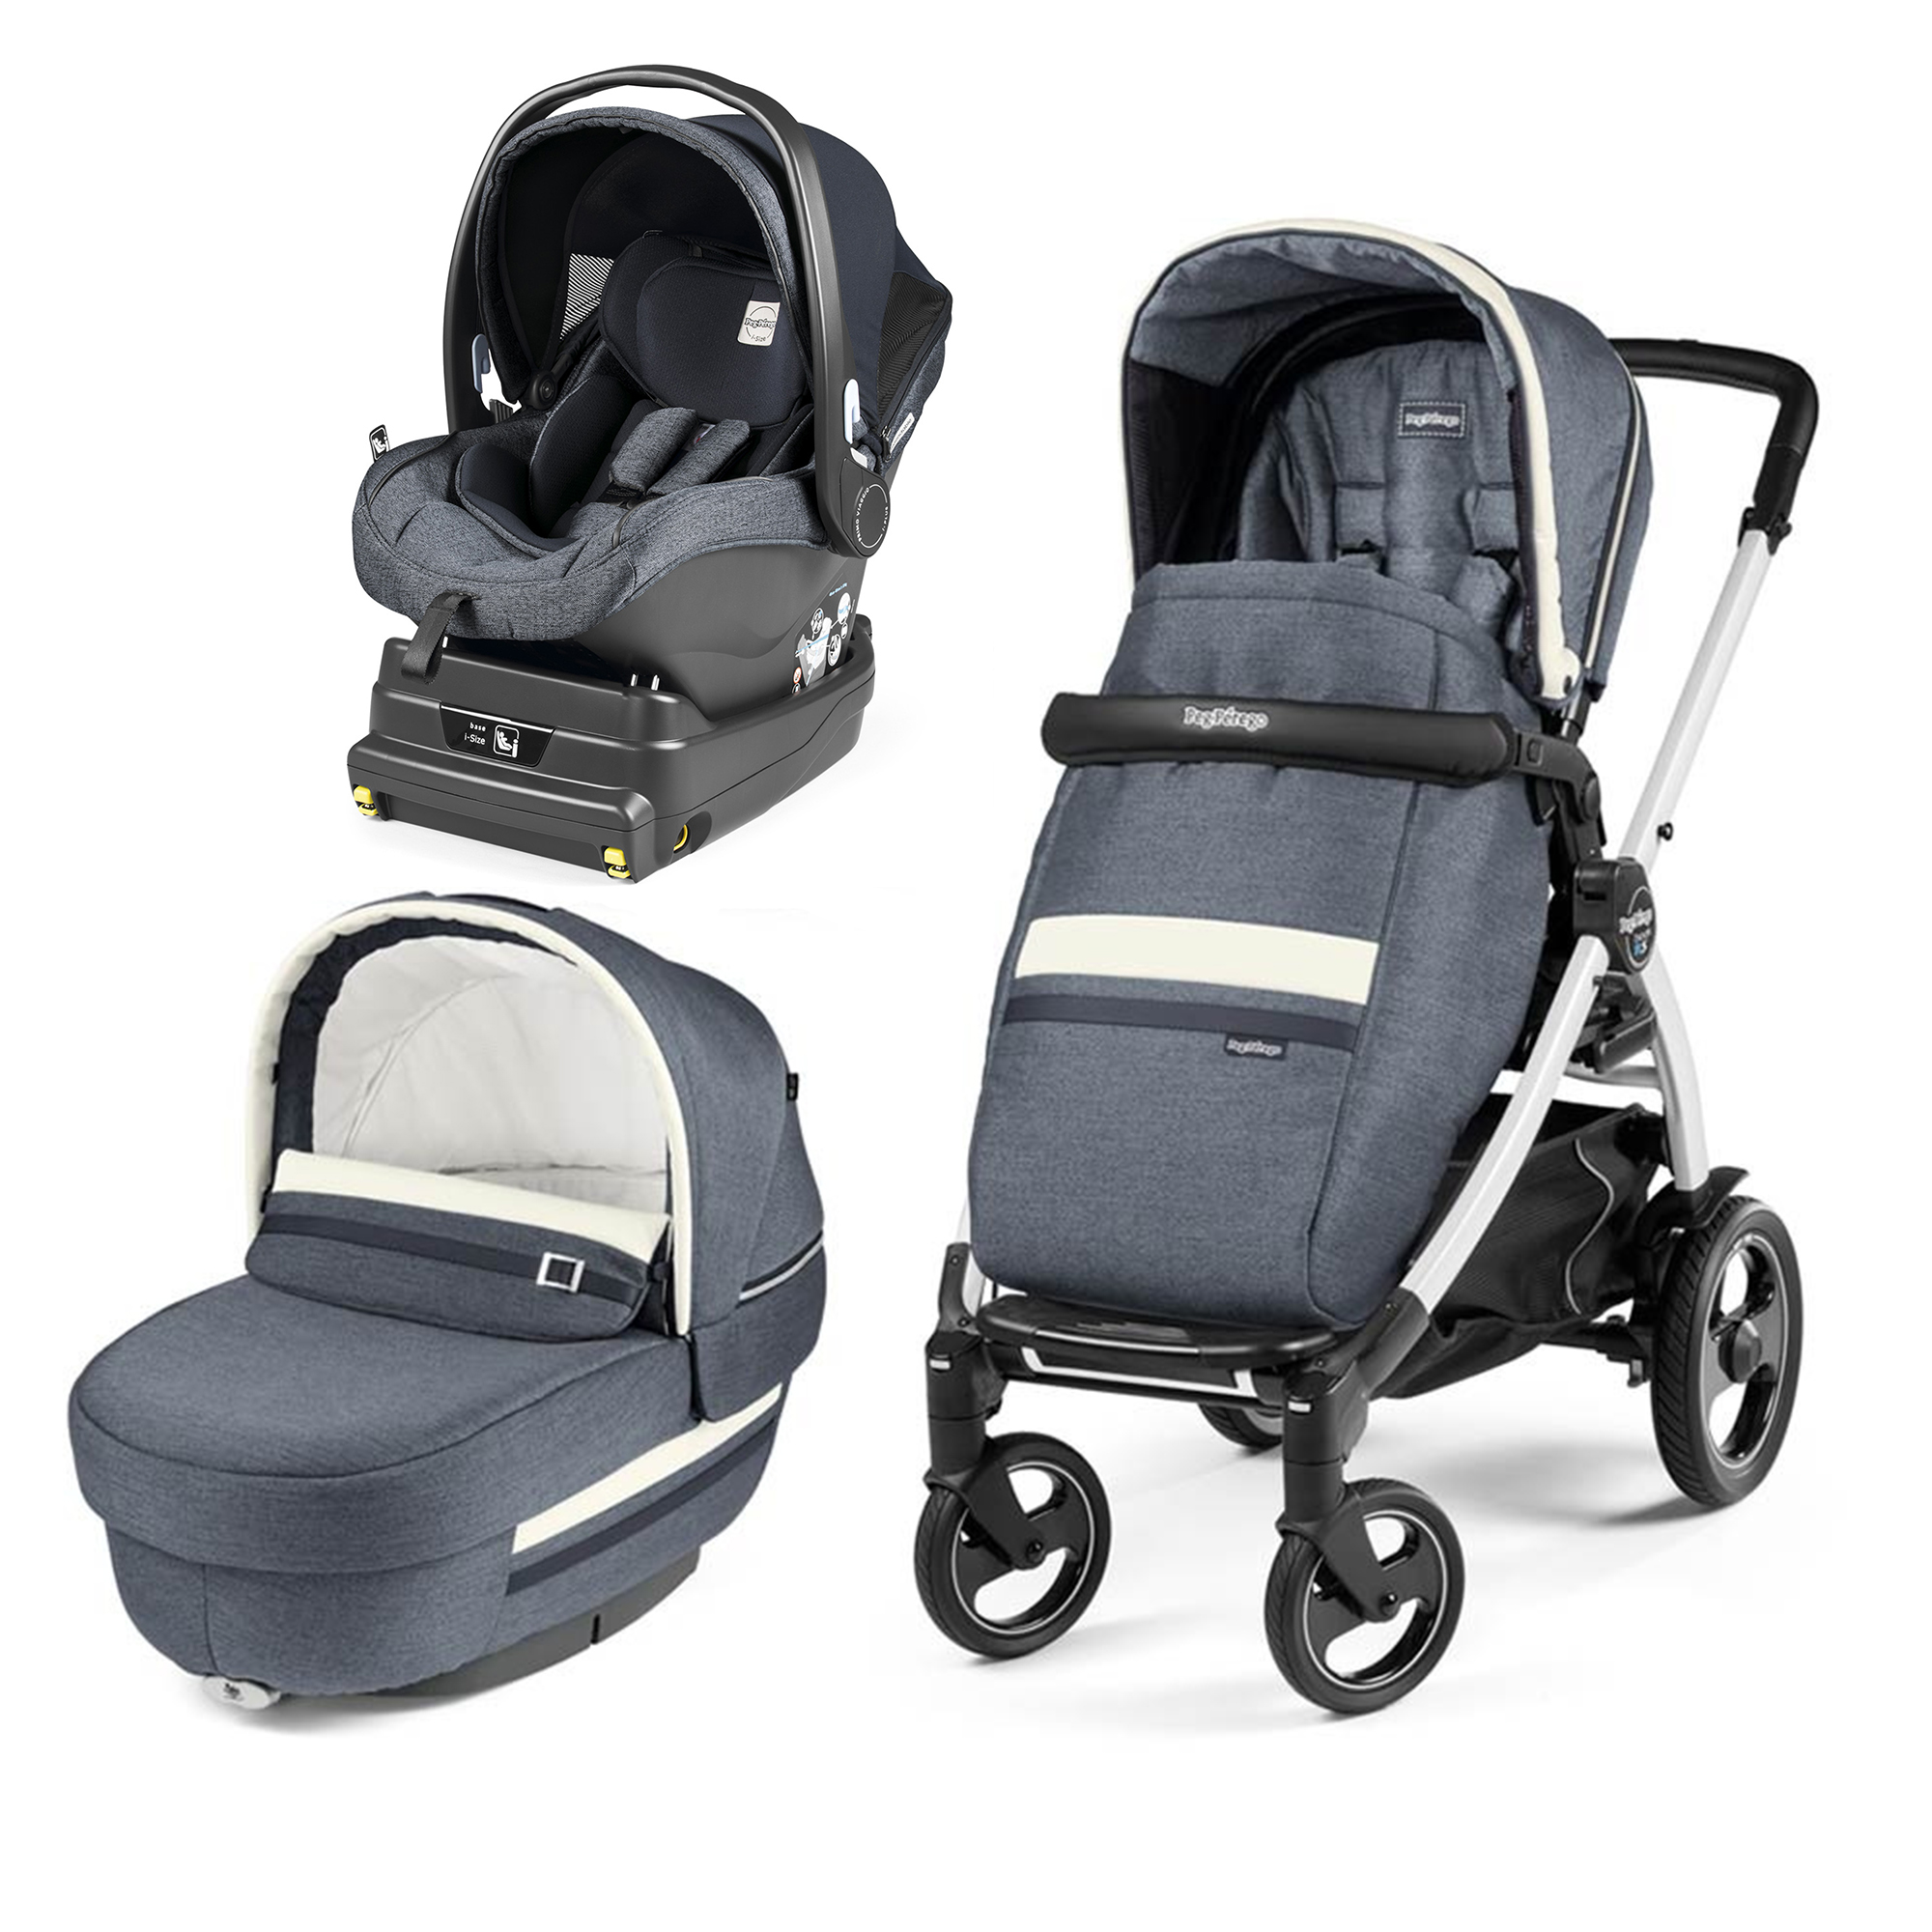 Carucior 3 In 1, Peg Perego, Book Plus 51 S, Titania White, i-Size, Luxe